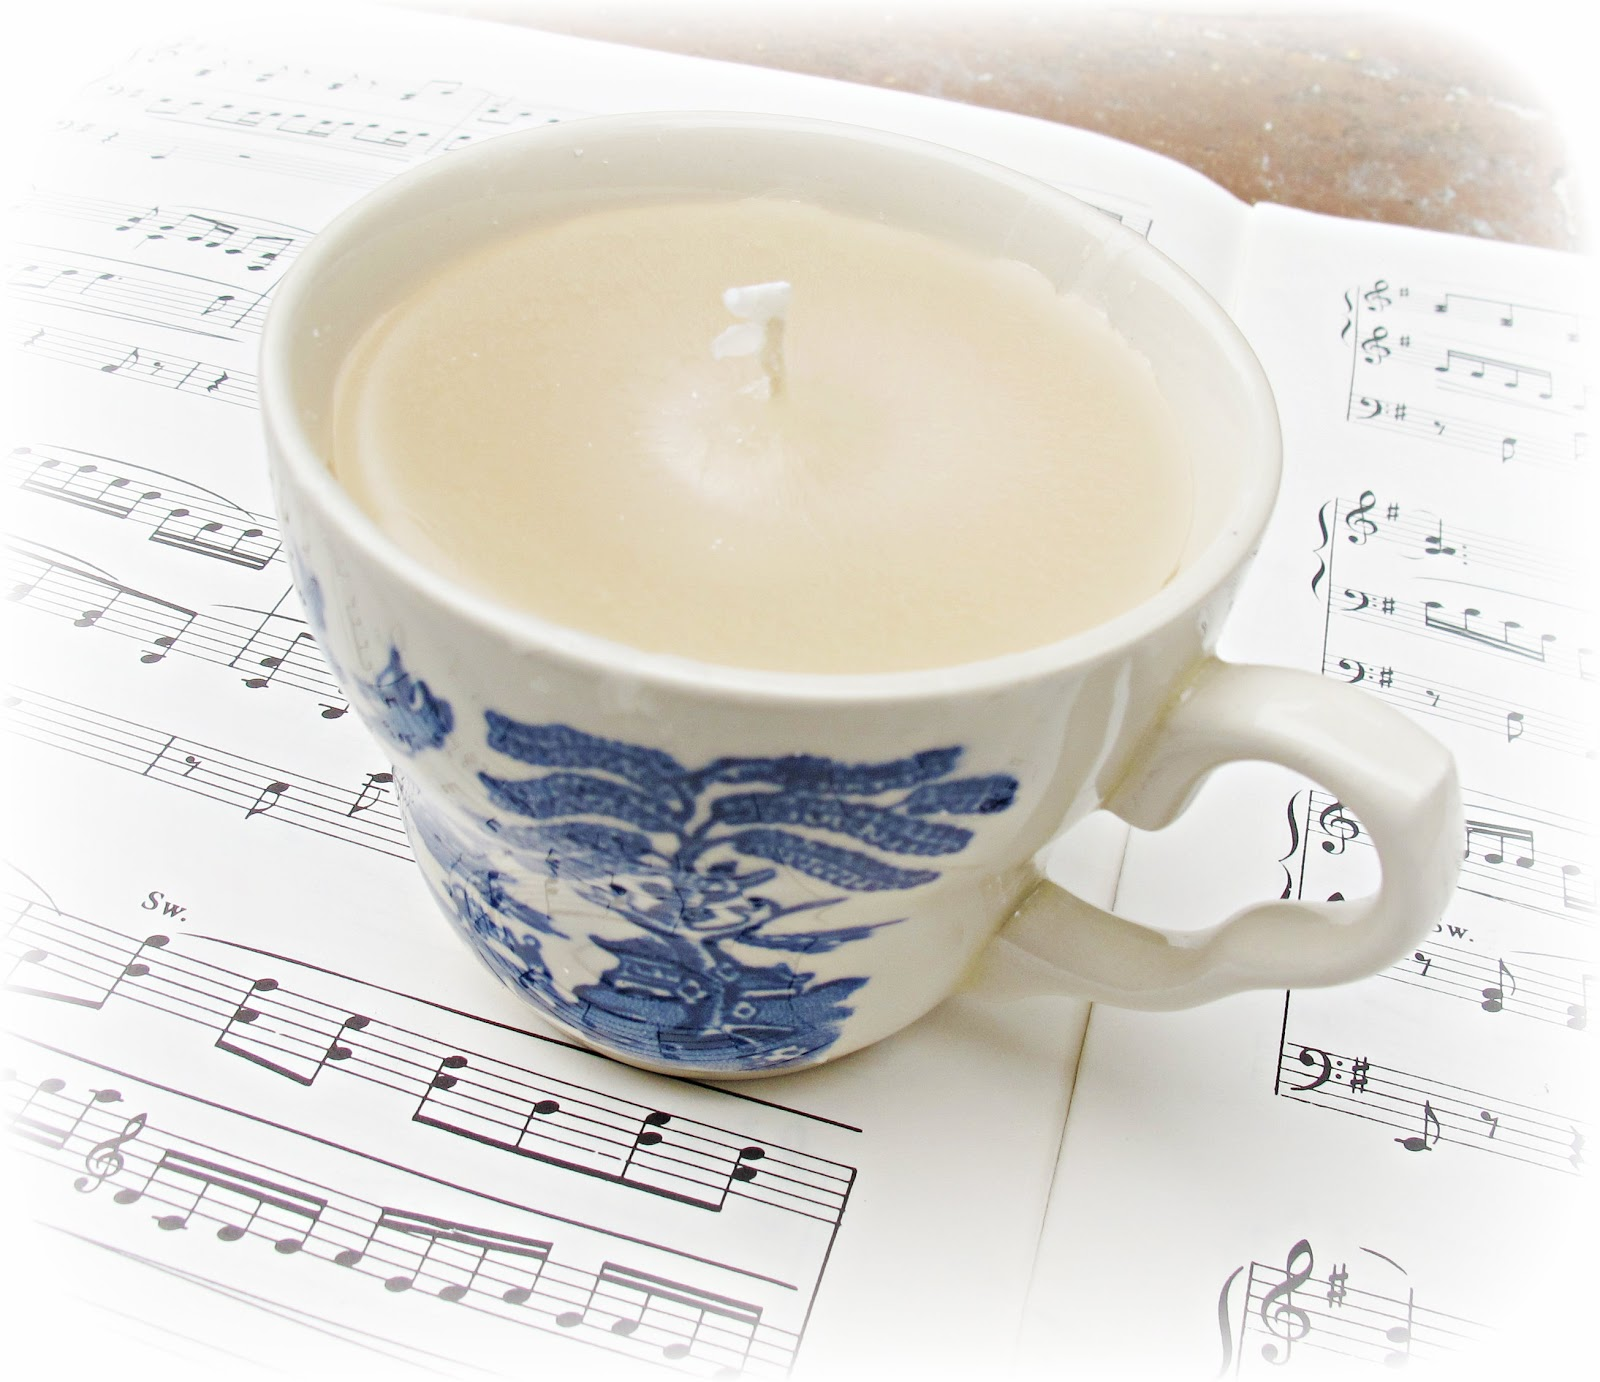 image teacup candle vintage-style willow-style blue and white ede